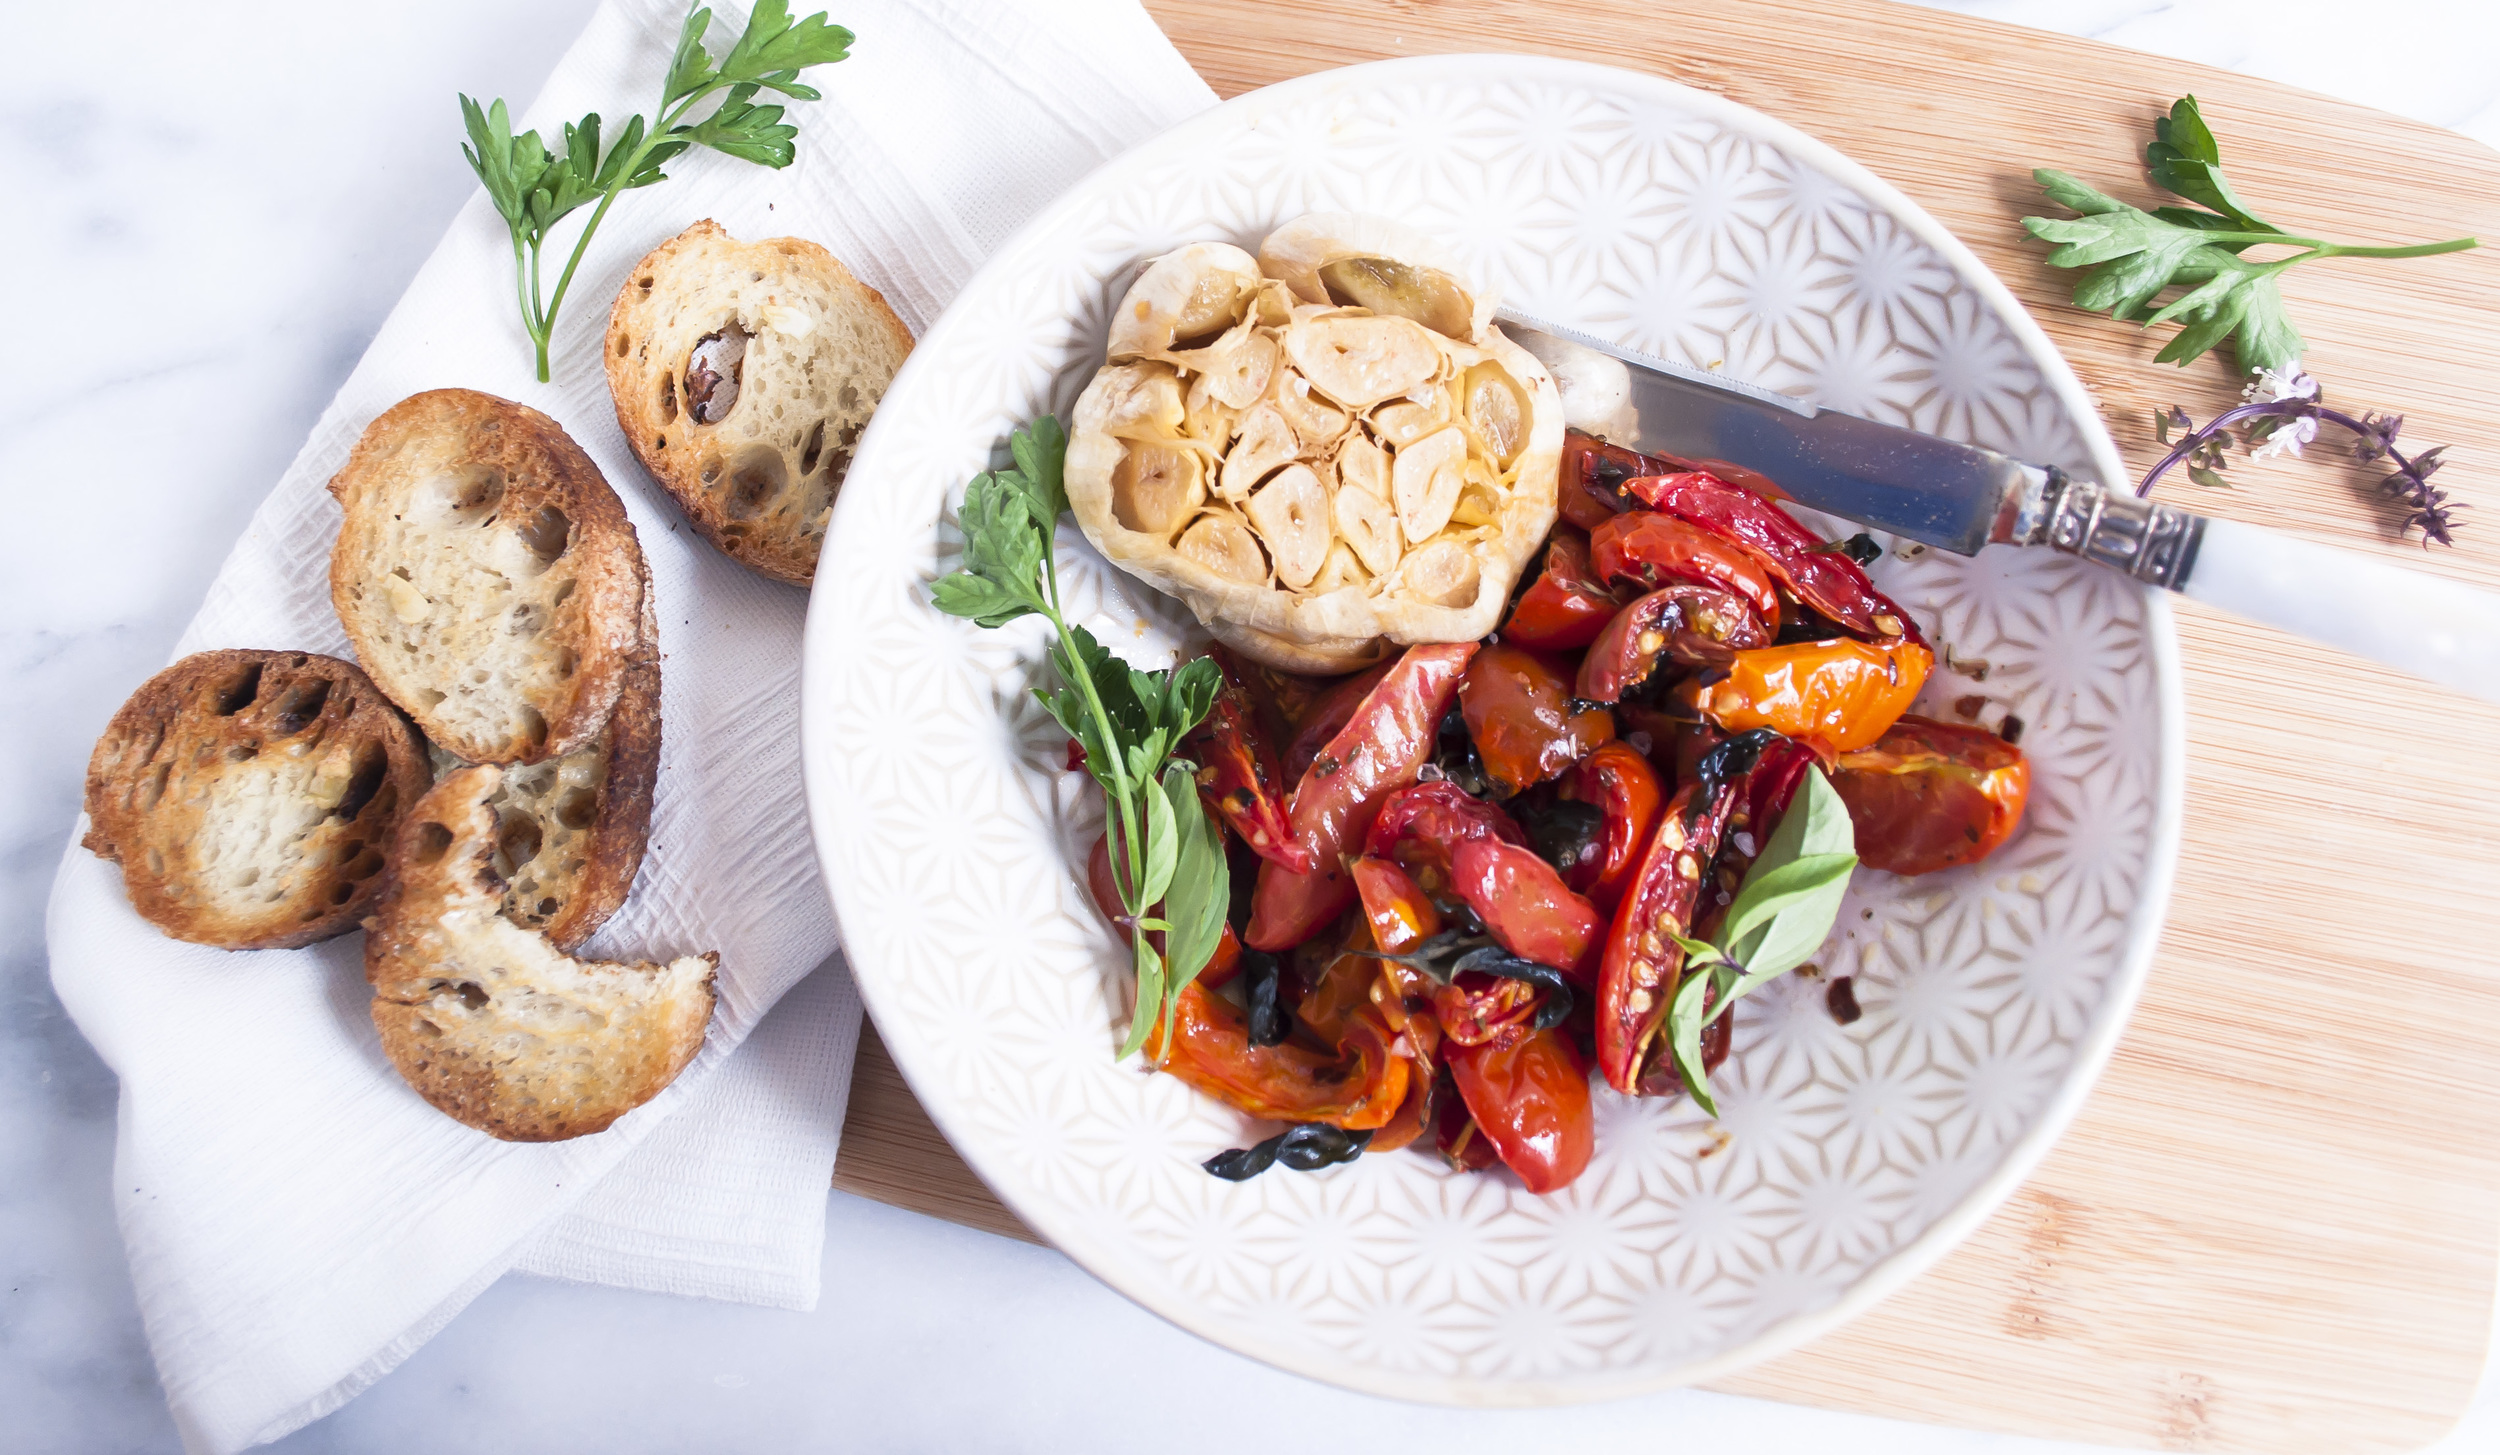 ROASTED GARLIC AND TOMATOES ON TOASTS